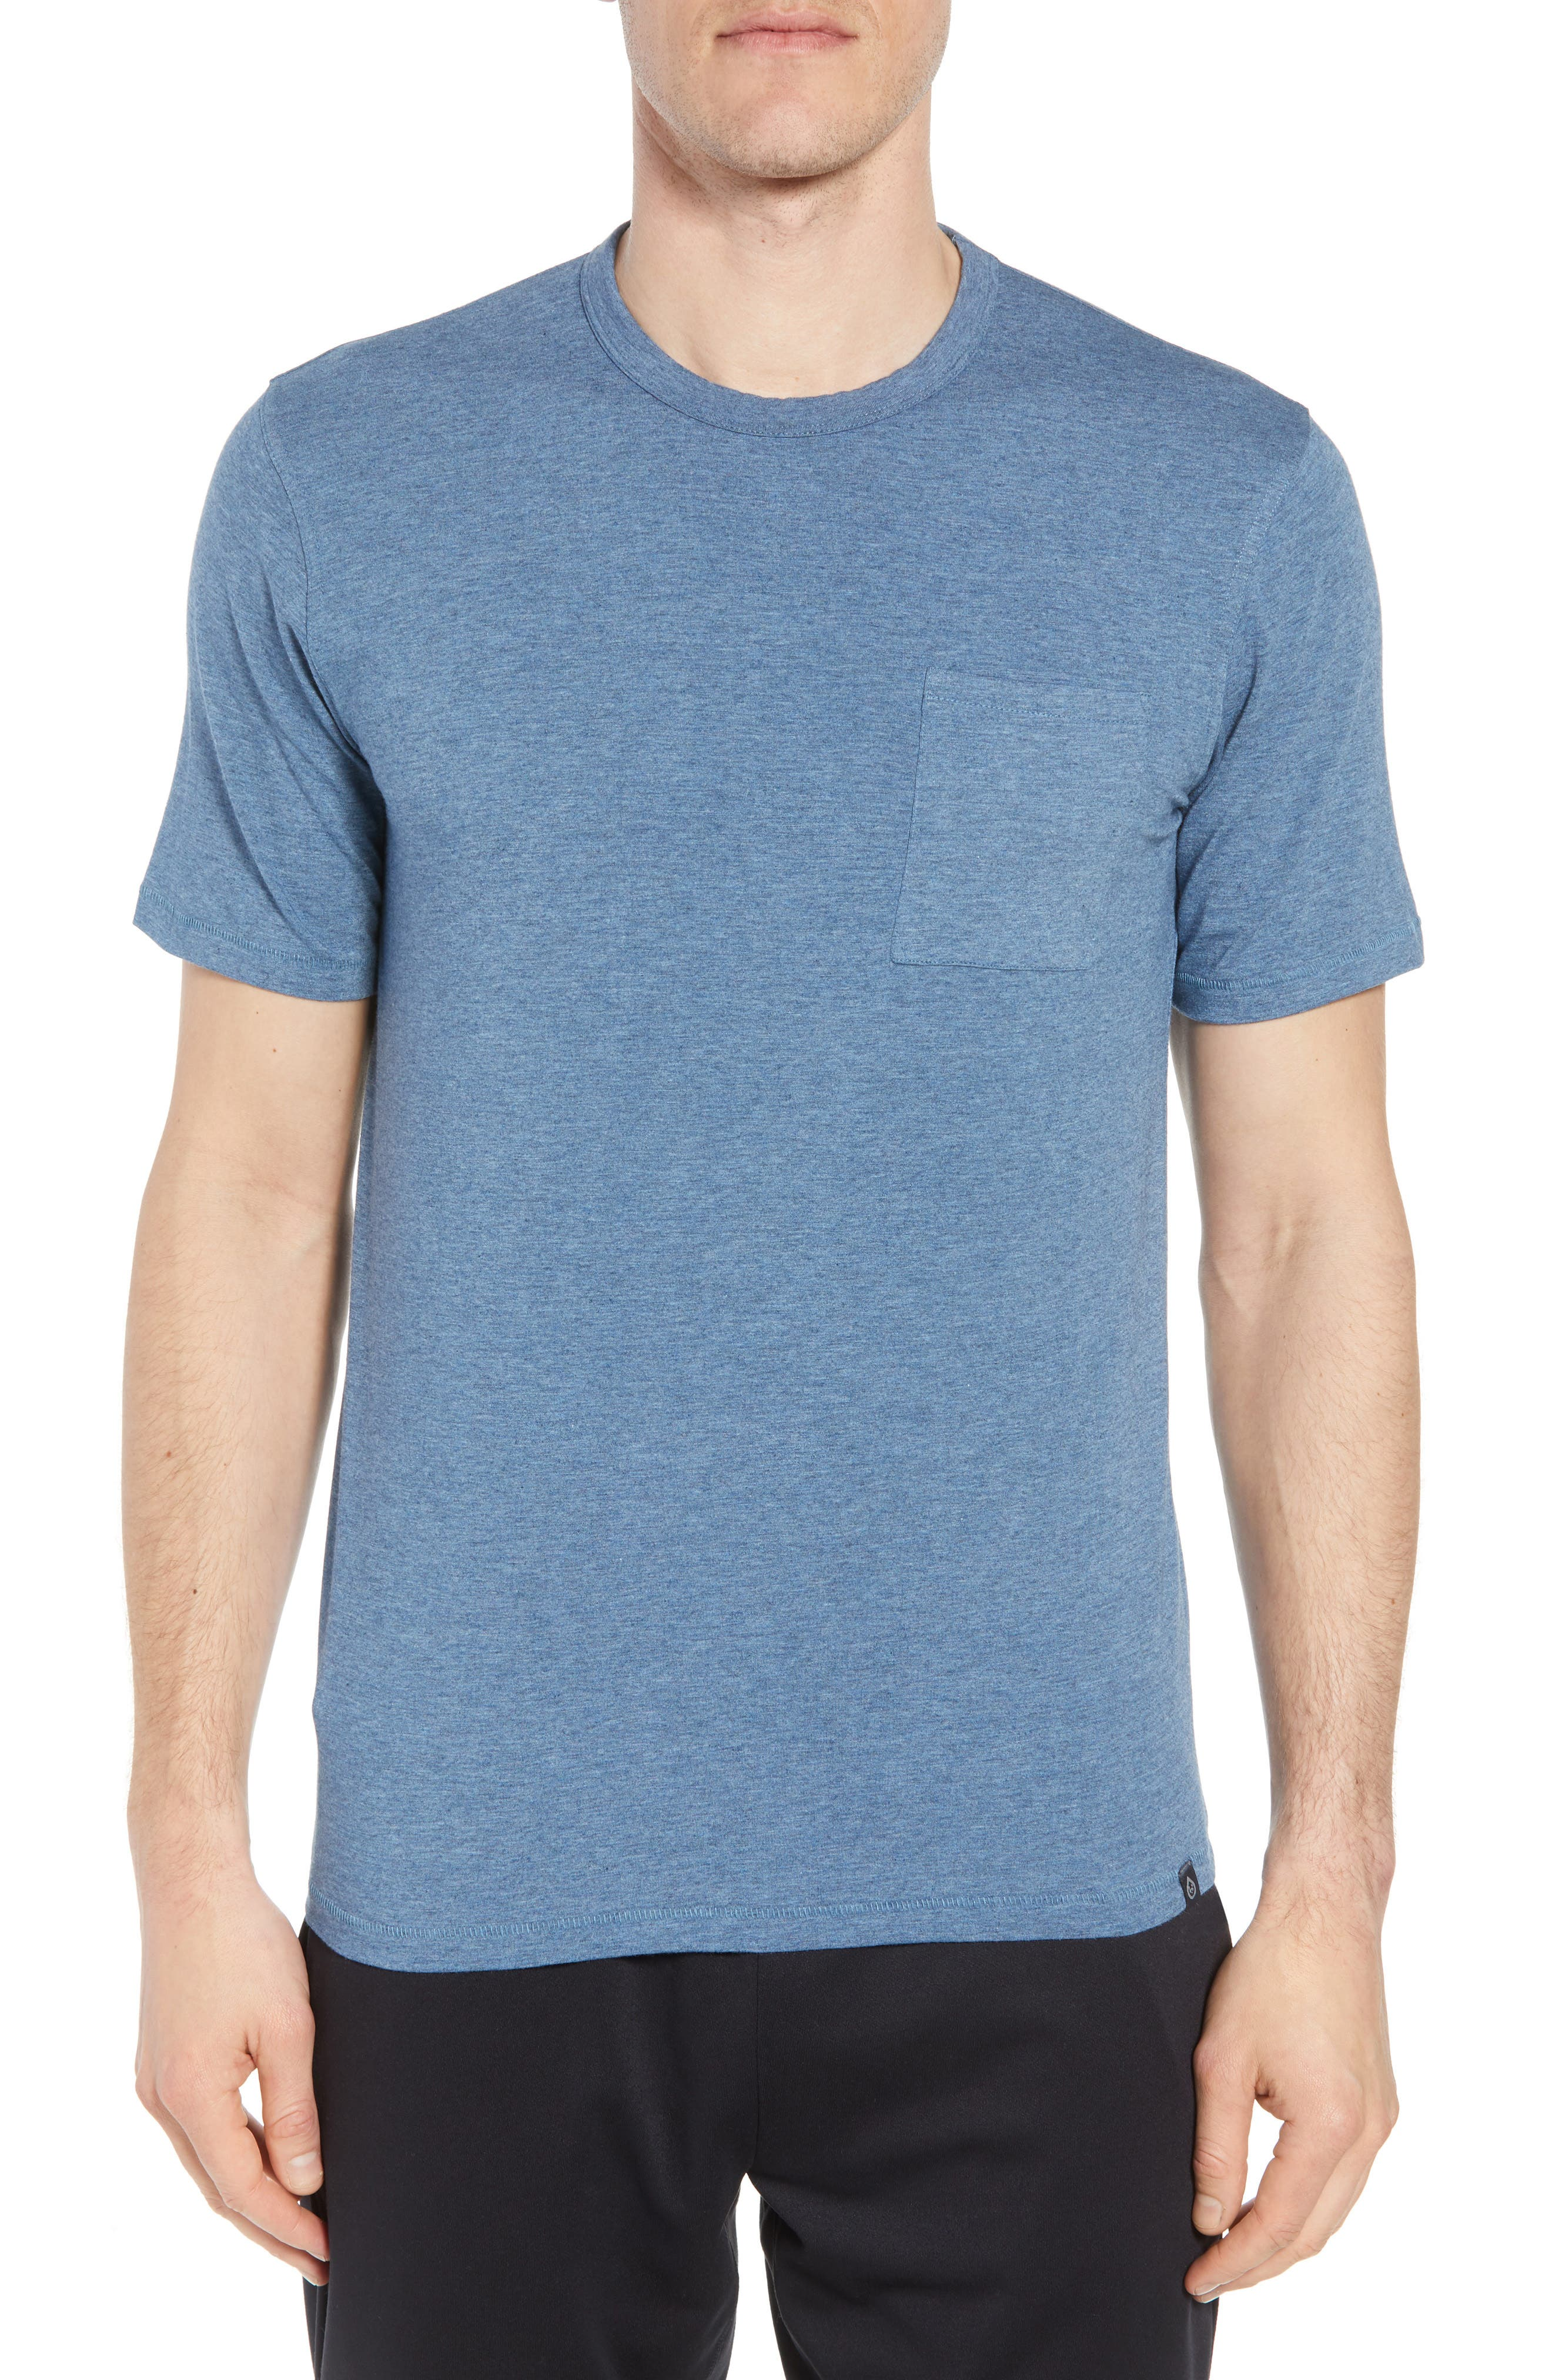 TASC Performance Nantucket Fitted T-Shirt